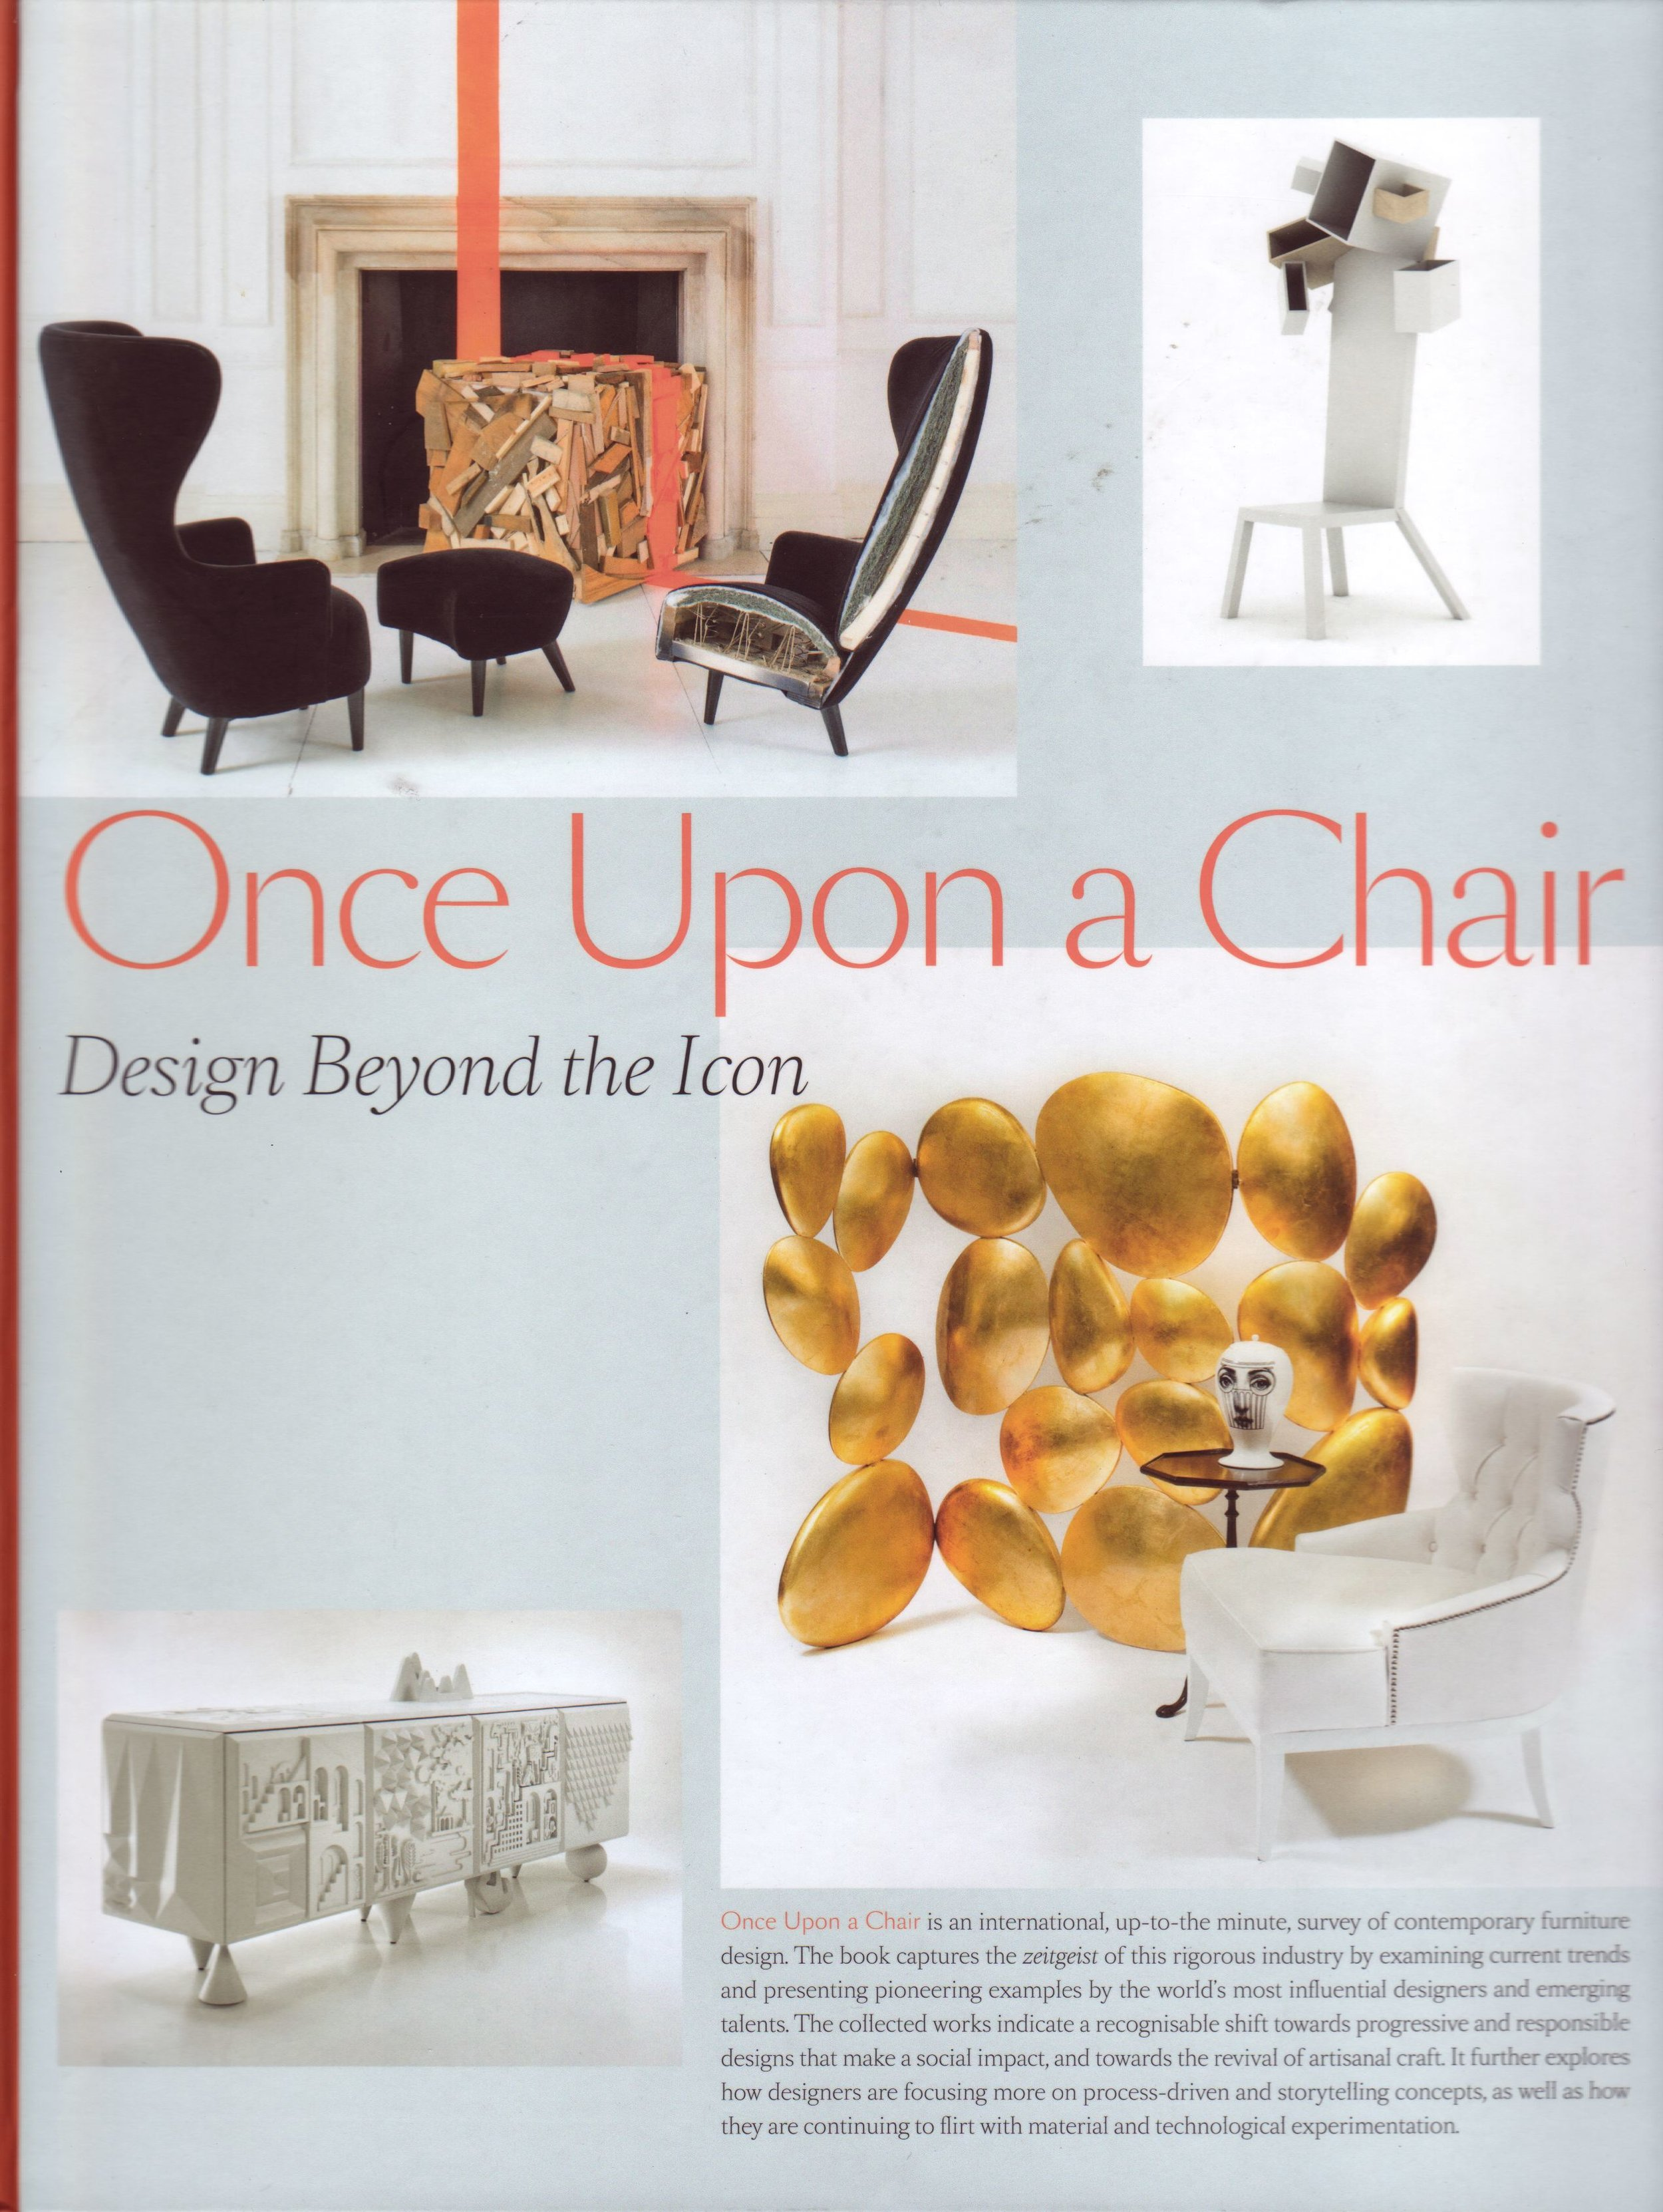 Once upon a chair Book - Artpower Publishing